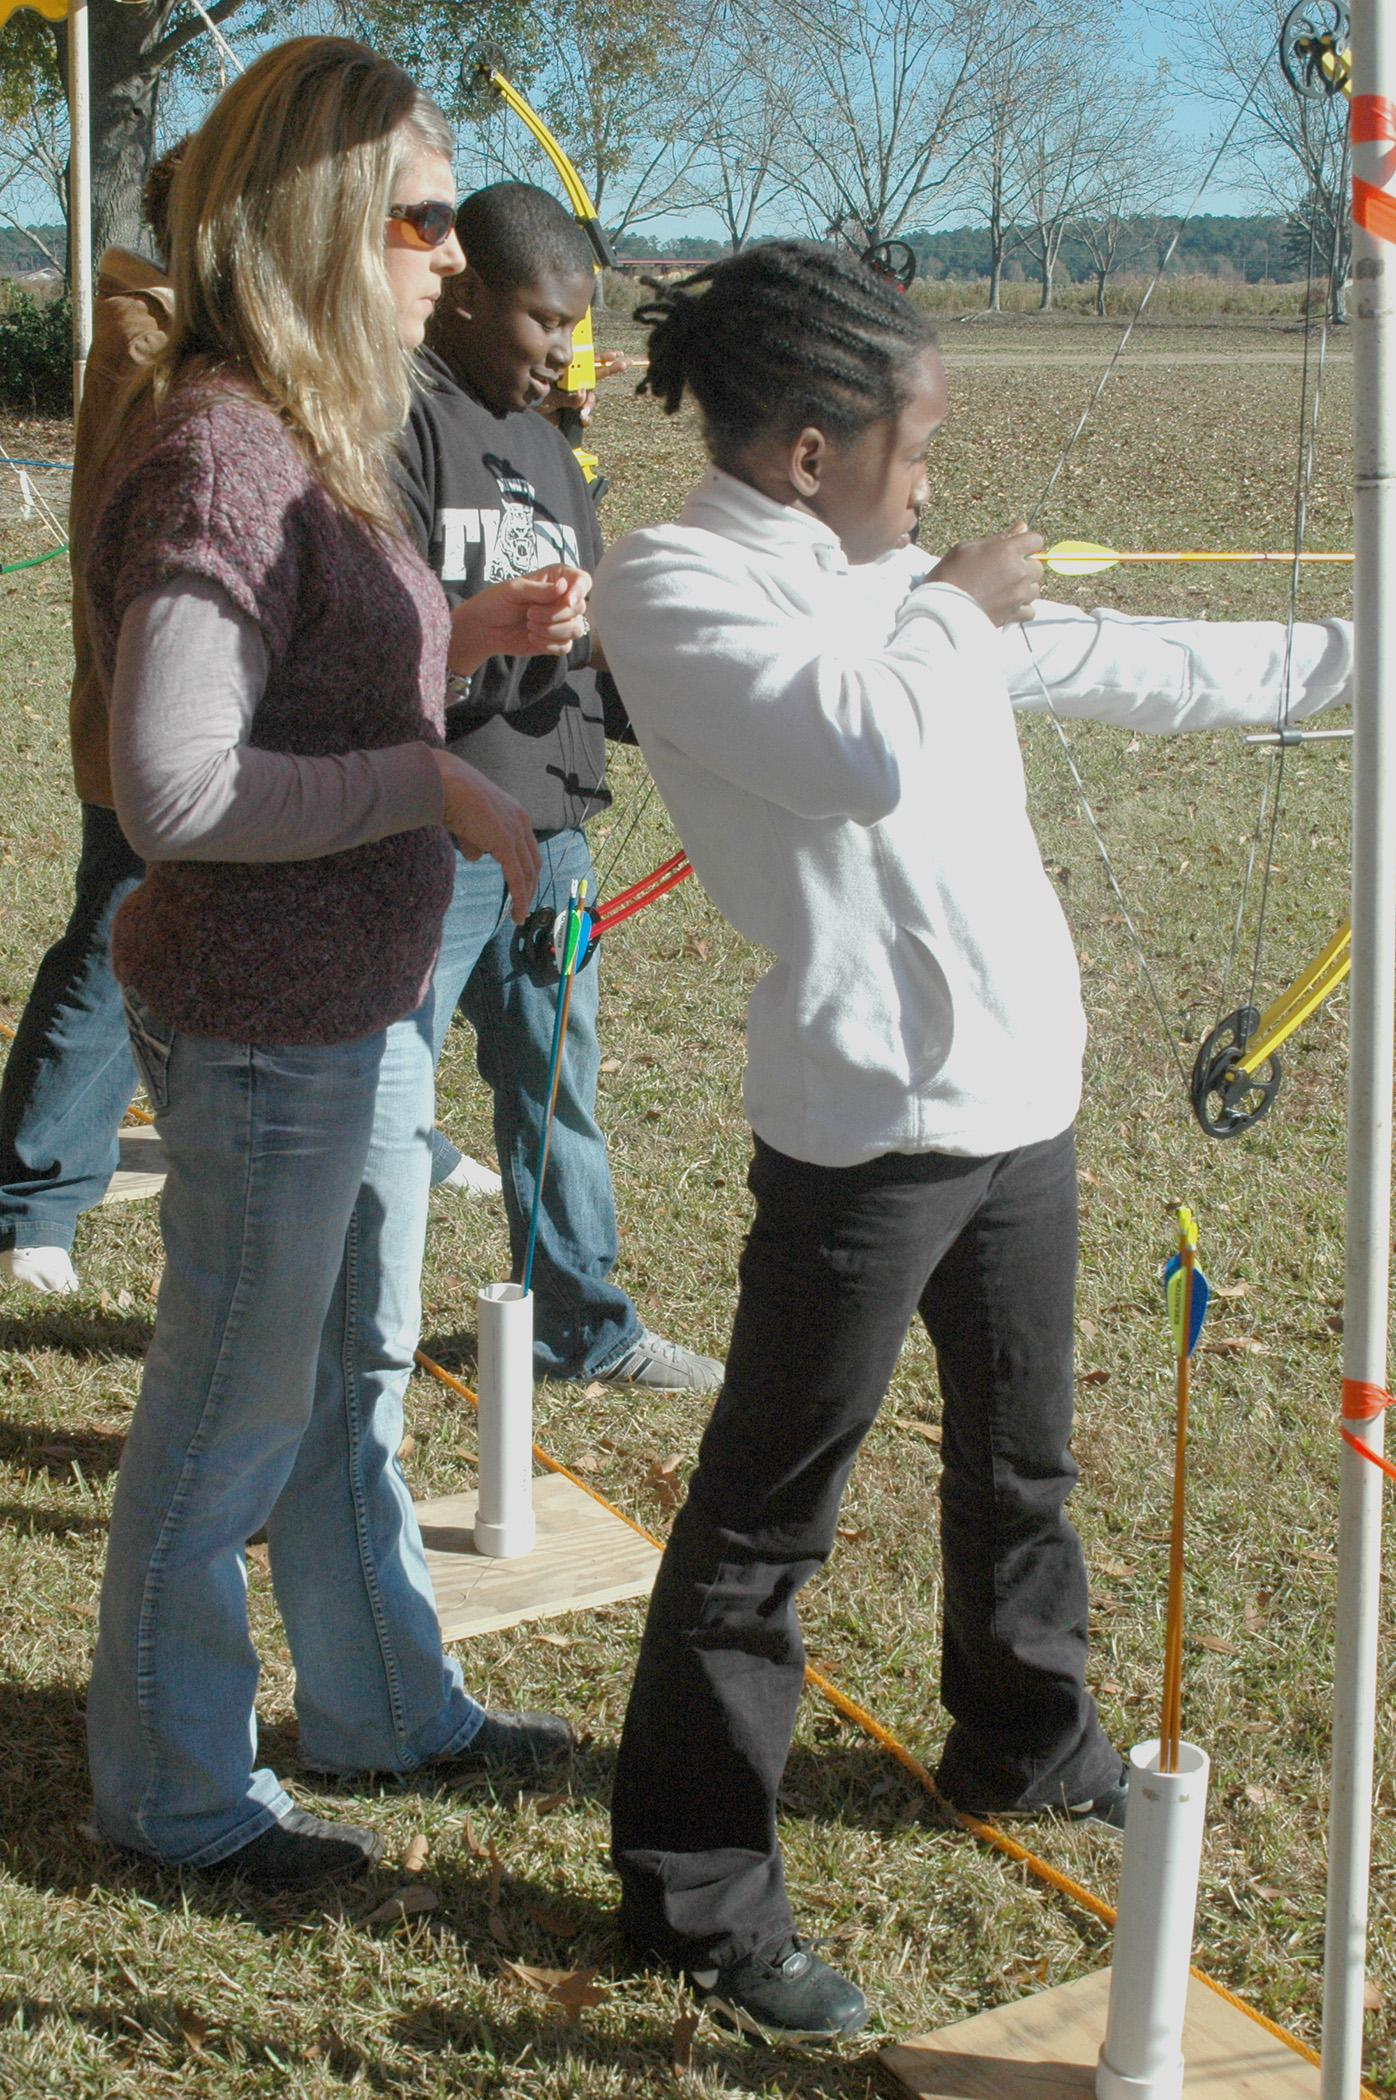 Leanne Wagner McGee, Newton County Extension agent, looks on as Nia McCalphia and Jemariaus Ford prepare to shoot arrows at their targets during the Wildlife Youth Day at the Coastal Plains Experiment Station Nov. 16. (MSU Ag Communications/Susan Collins-Smith)